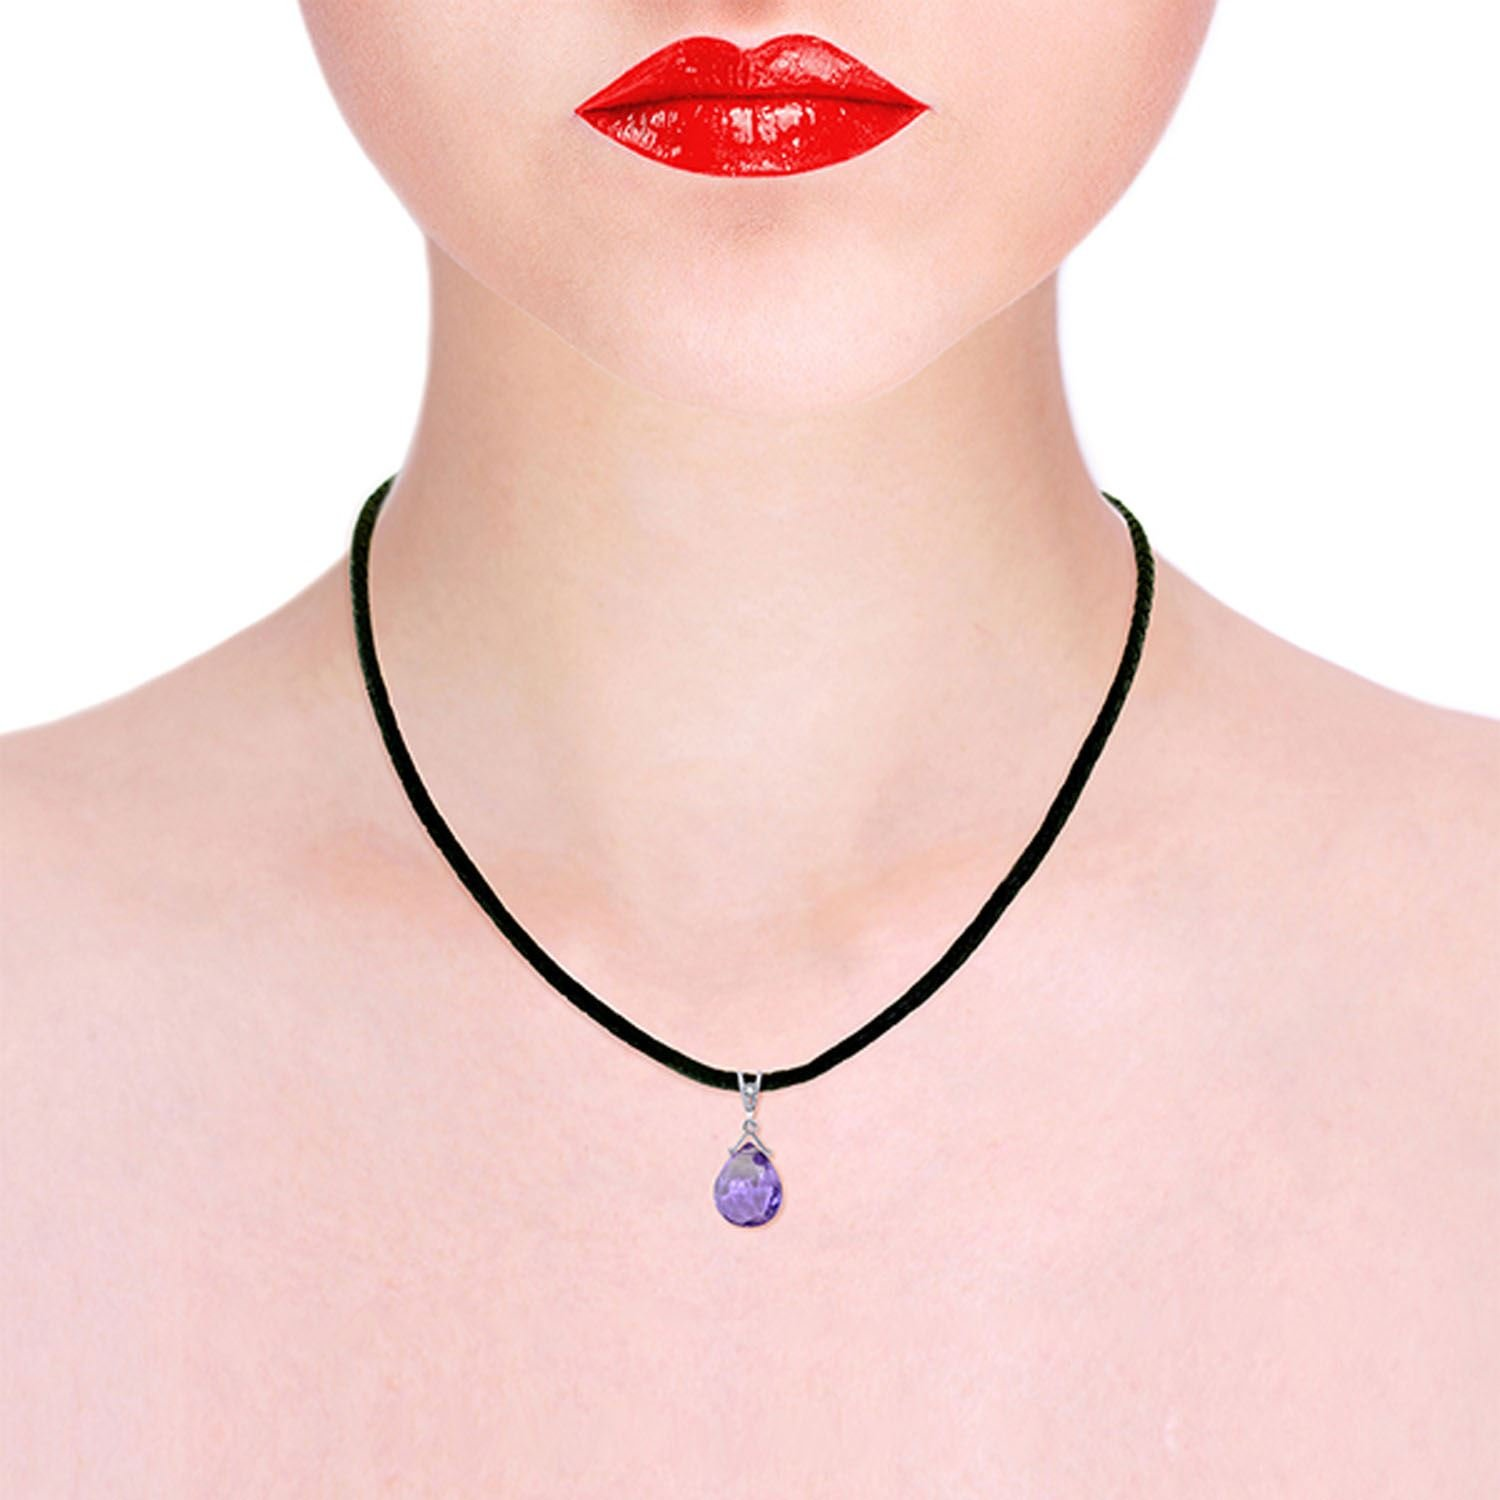 ALARRI 6.51 CTW 14K Solid White Gold Push The Button Amethyst Diamond Necklace with 24 Inch Chain Length